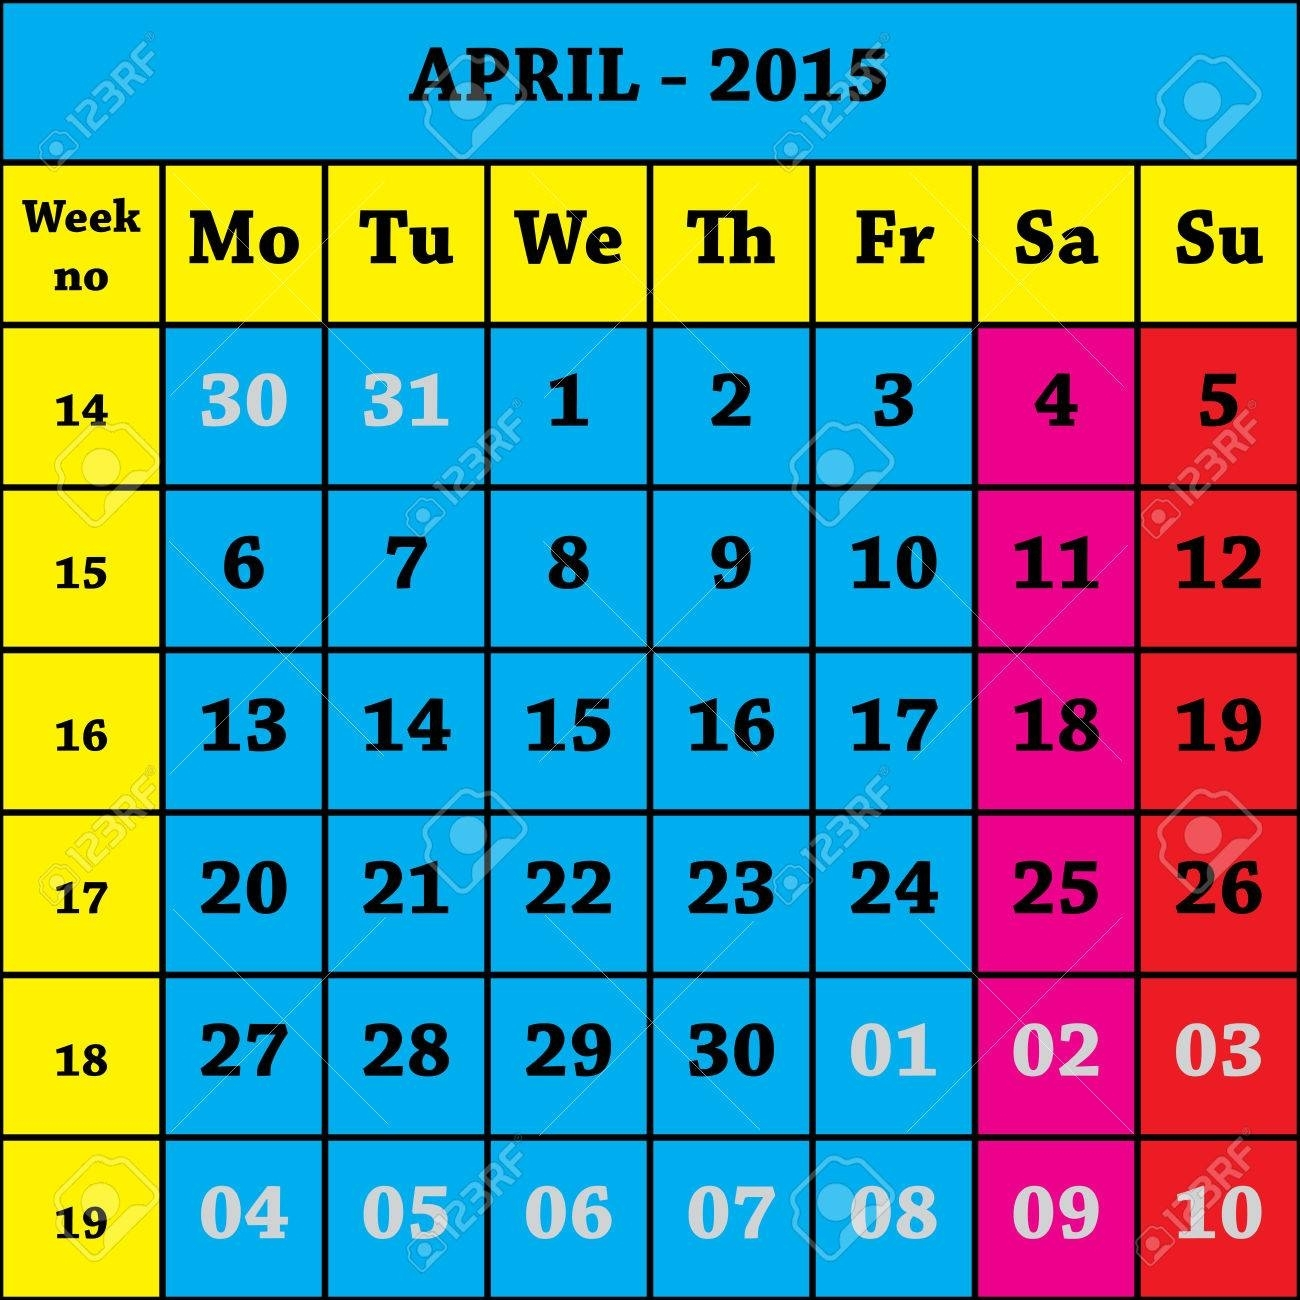 2015 April Calendar Iso 8601 With Week Number